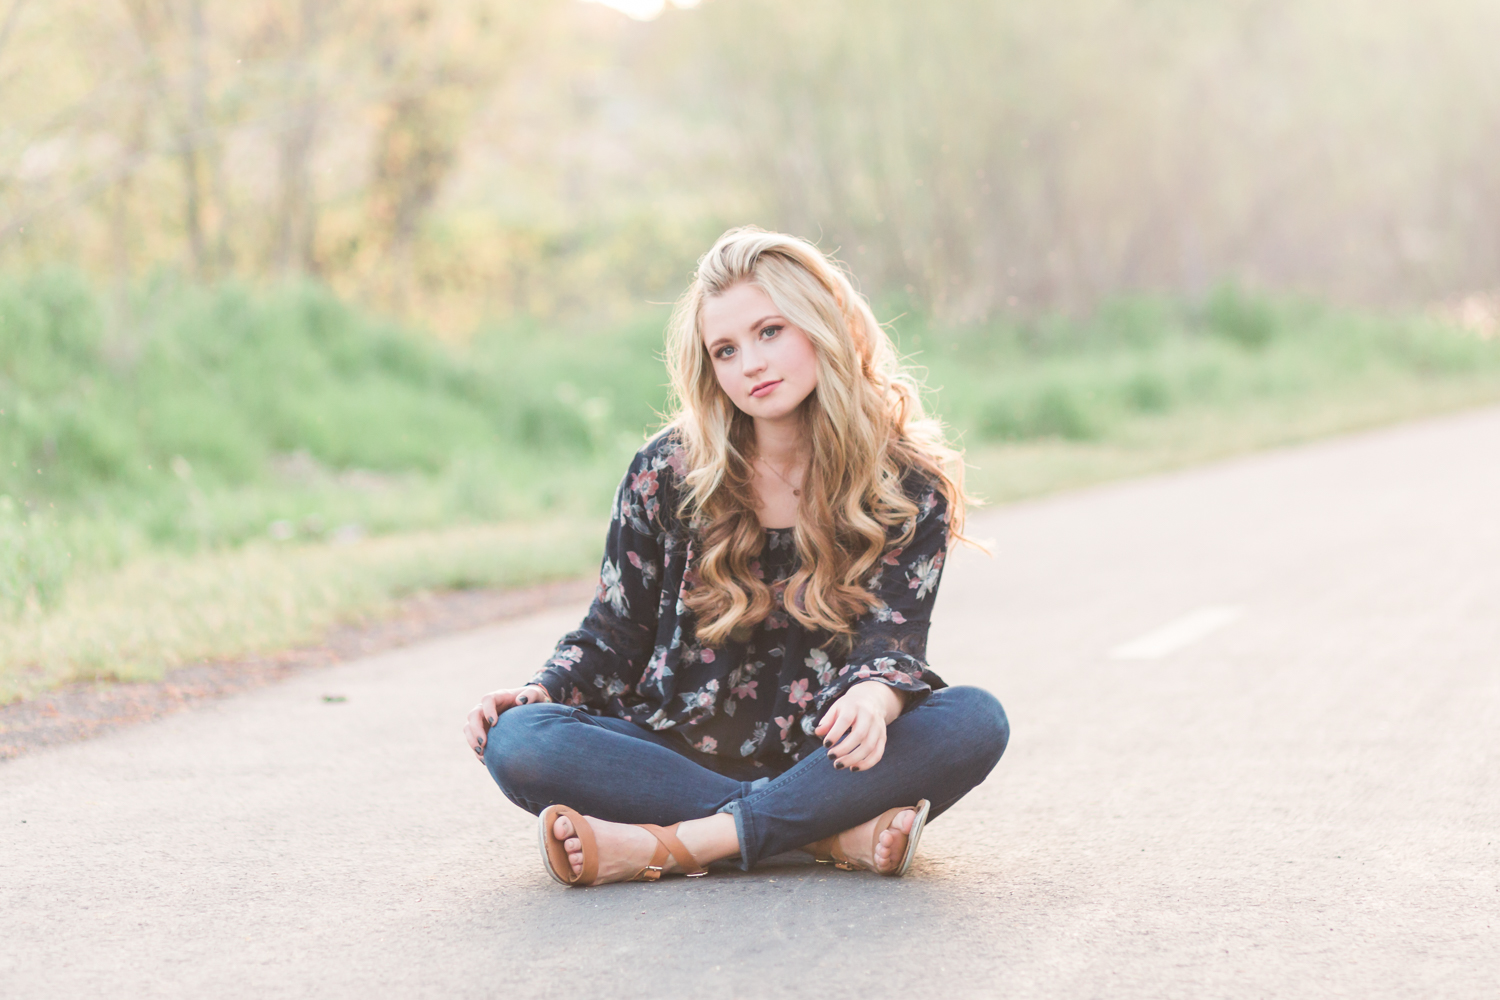 High-school-senior-pictures-whitney-bufton-photography-99.jpg